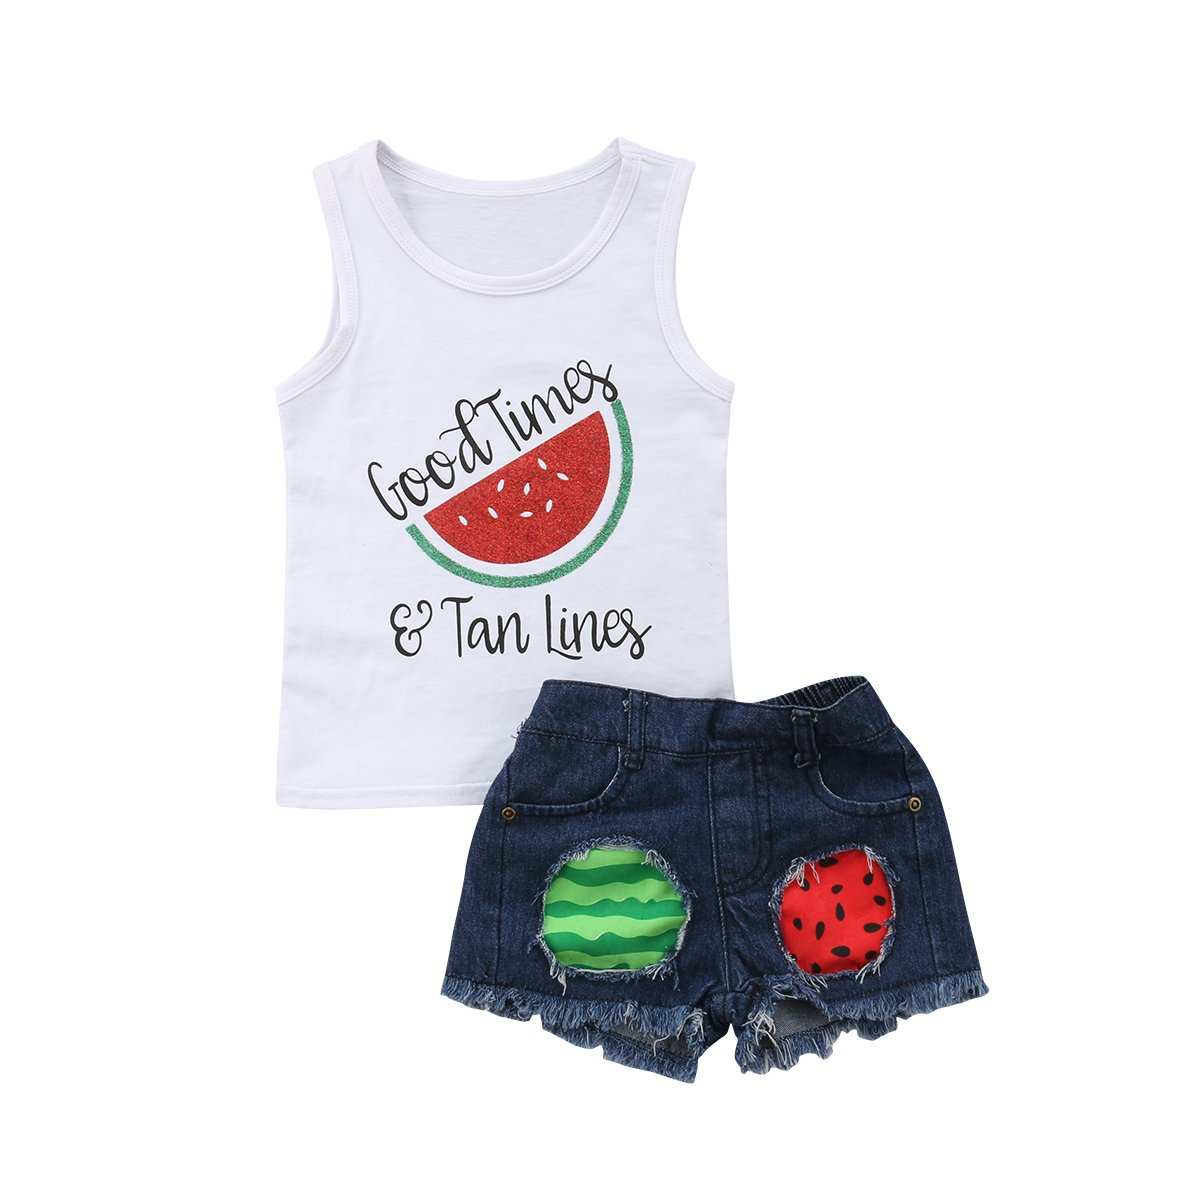 4cce2c780041e sweetyhouse Infant Baby Girls Sleeveless Denim Shorts Sets,2Pcs Kids Vest  Top + Ripped Jeans Pants Outfits (5-6T, Watermelon)